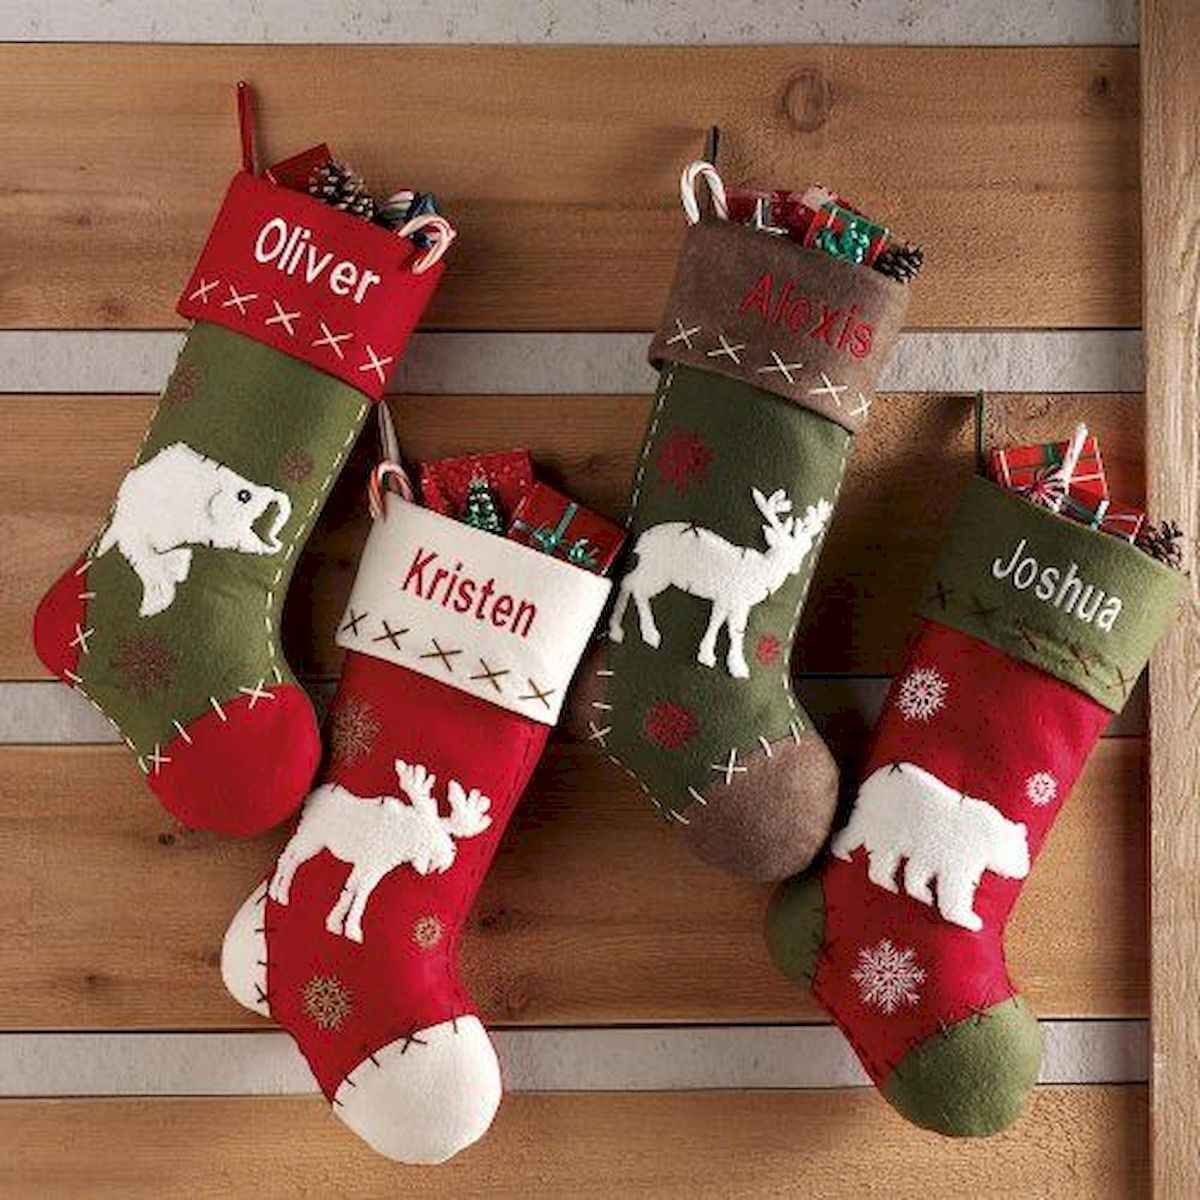 35 awesome apartment christmas decorations ideas (2)